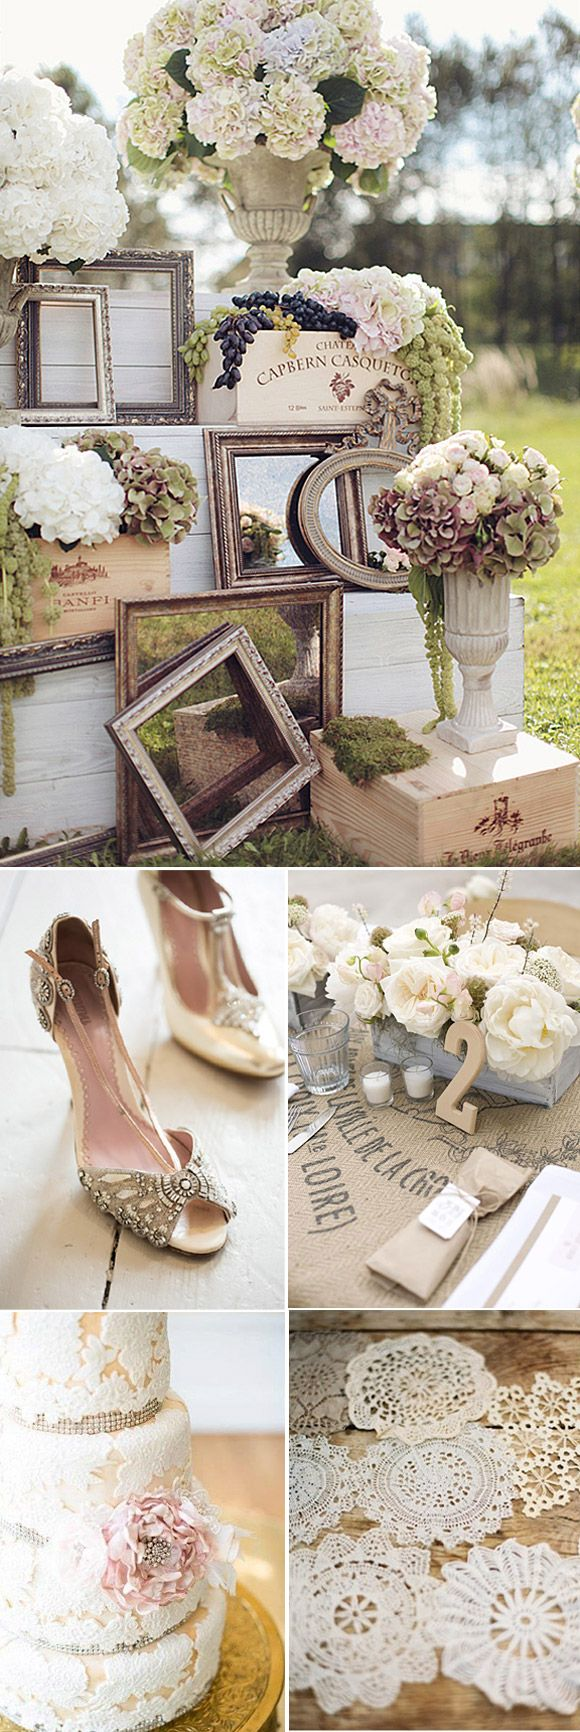 Decoracion Matrimonio Vintage ~ Explore Bodas Vintage Mesas, Vintage Wedding, and more!